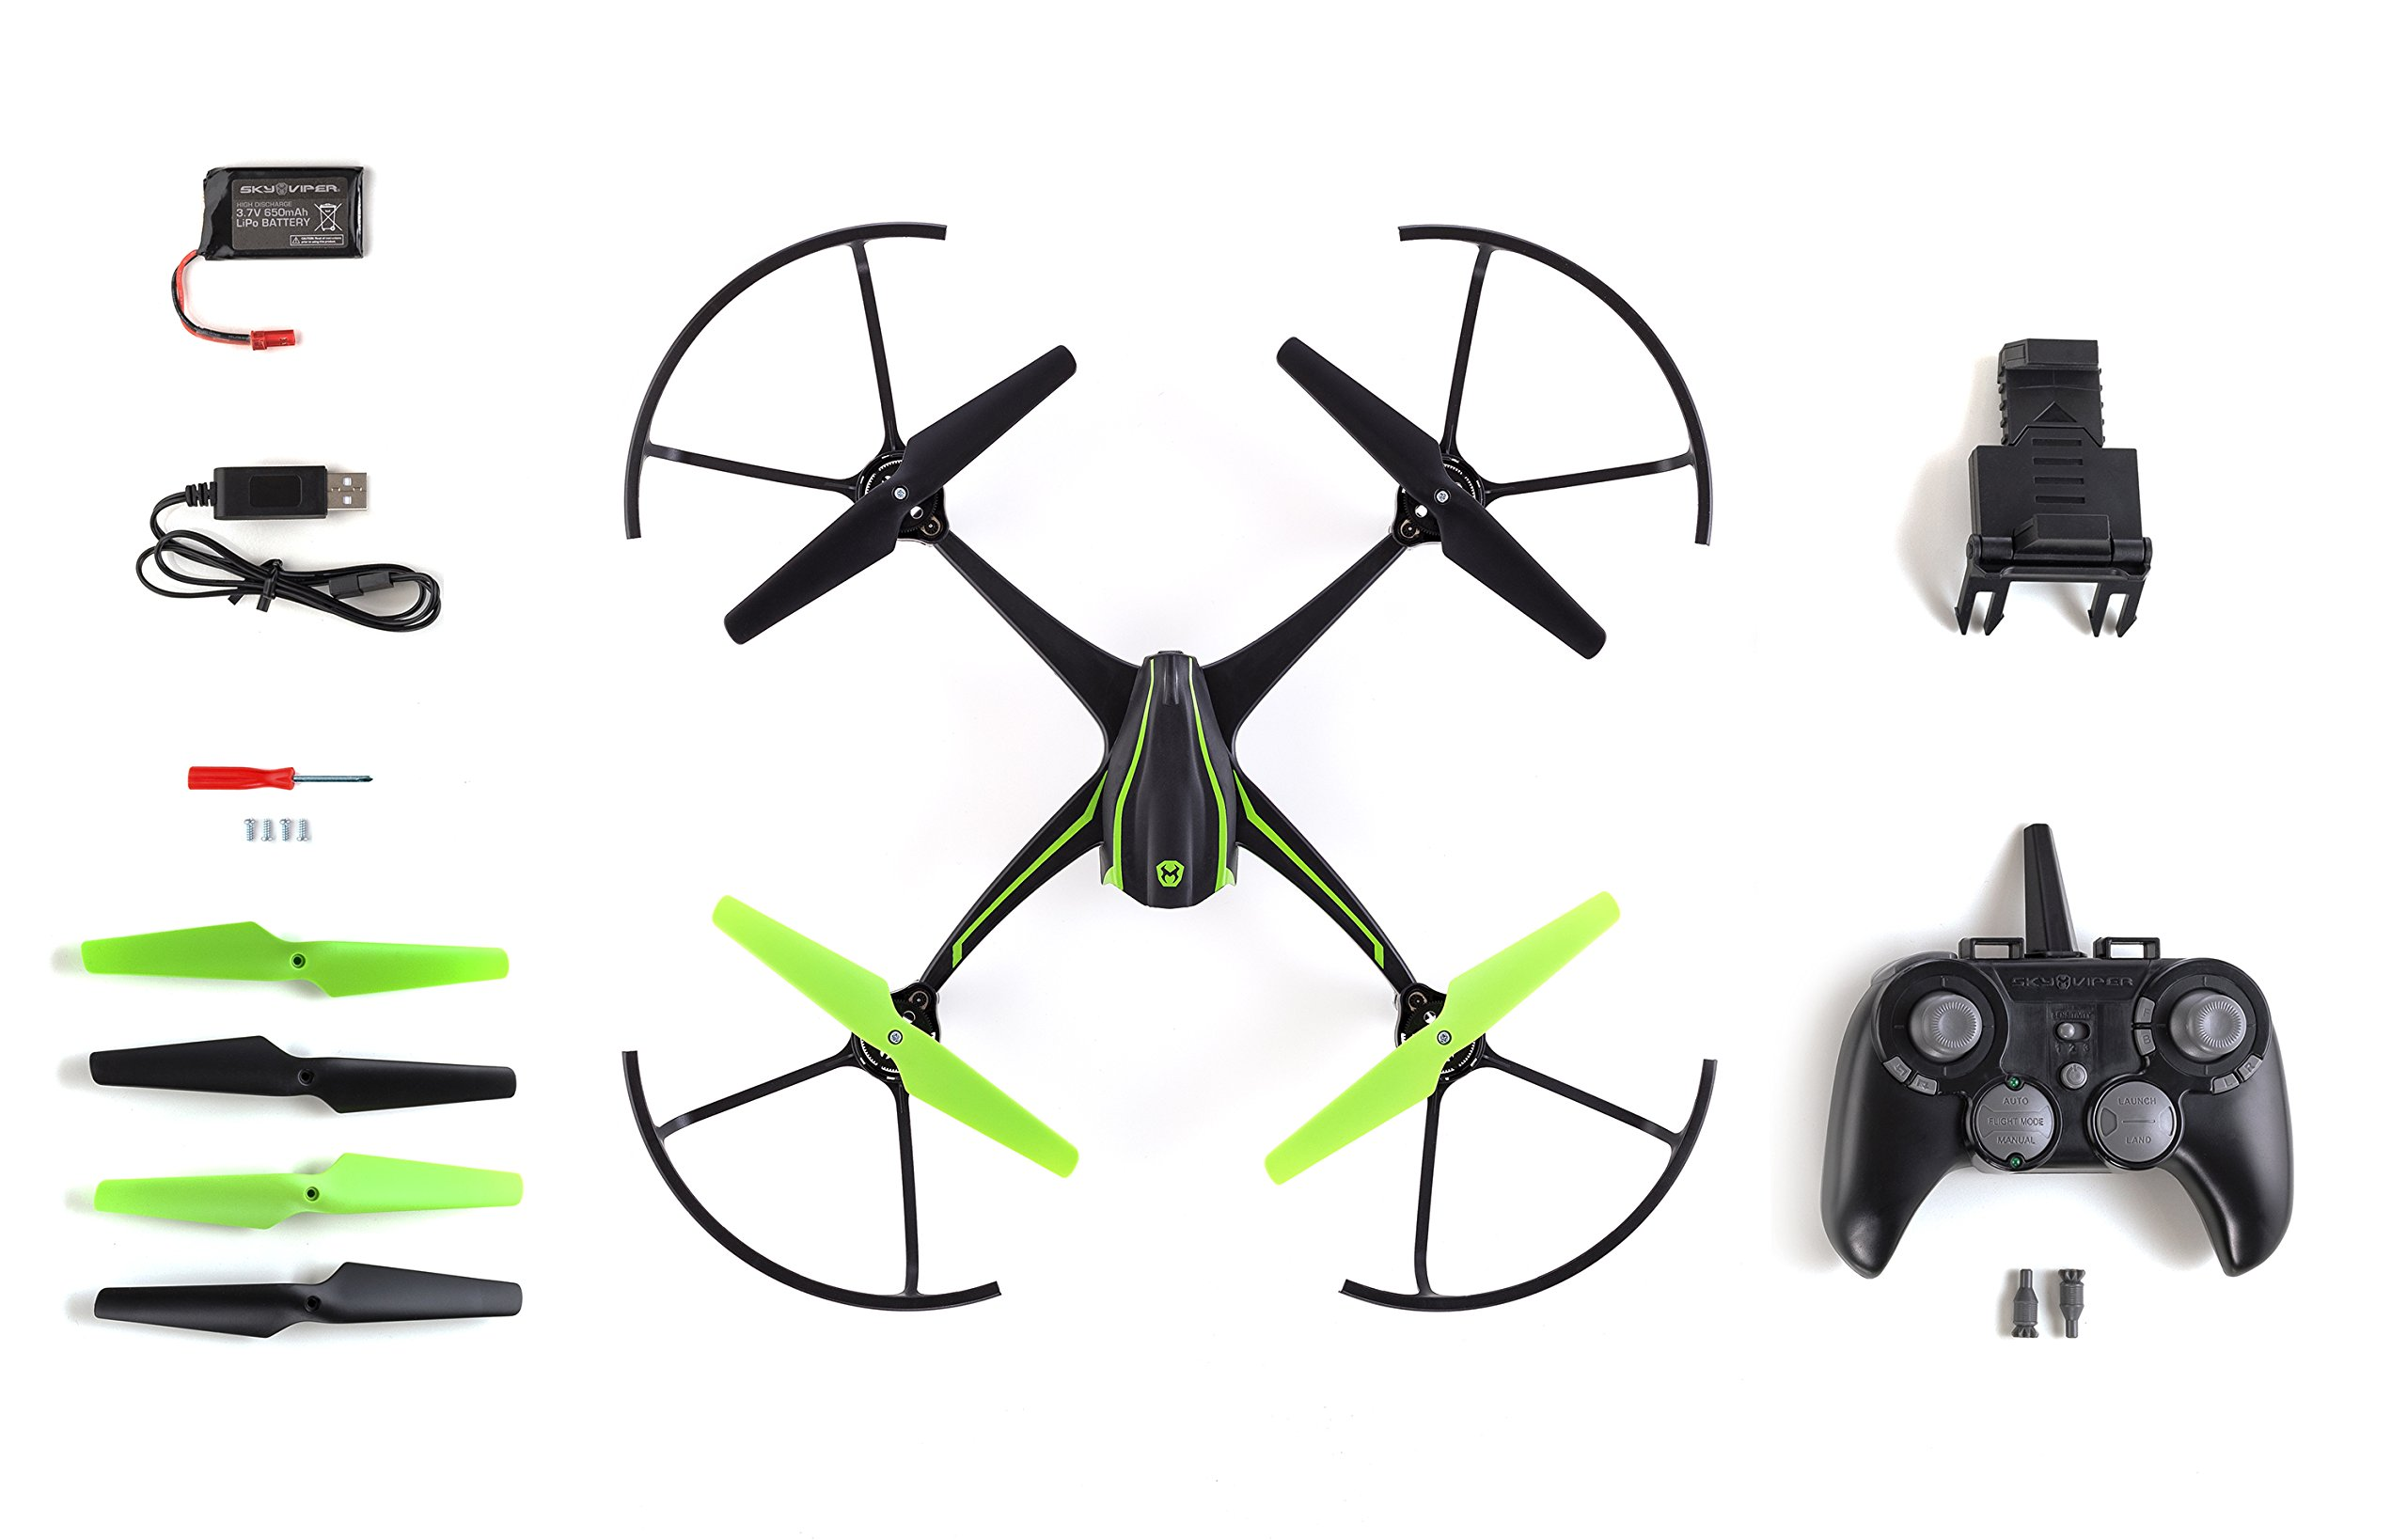 Sky Viper v2450HD Streaming Drone with Flight Assist & 2X Improved Flight Range - 2017 Edition by Sky Viper (Image #6)